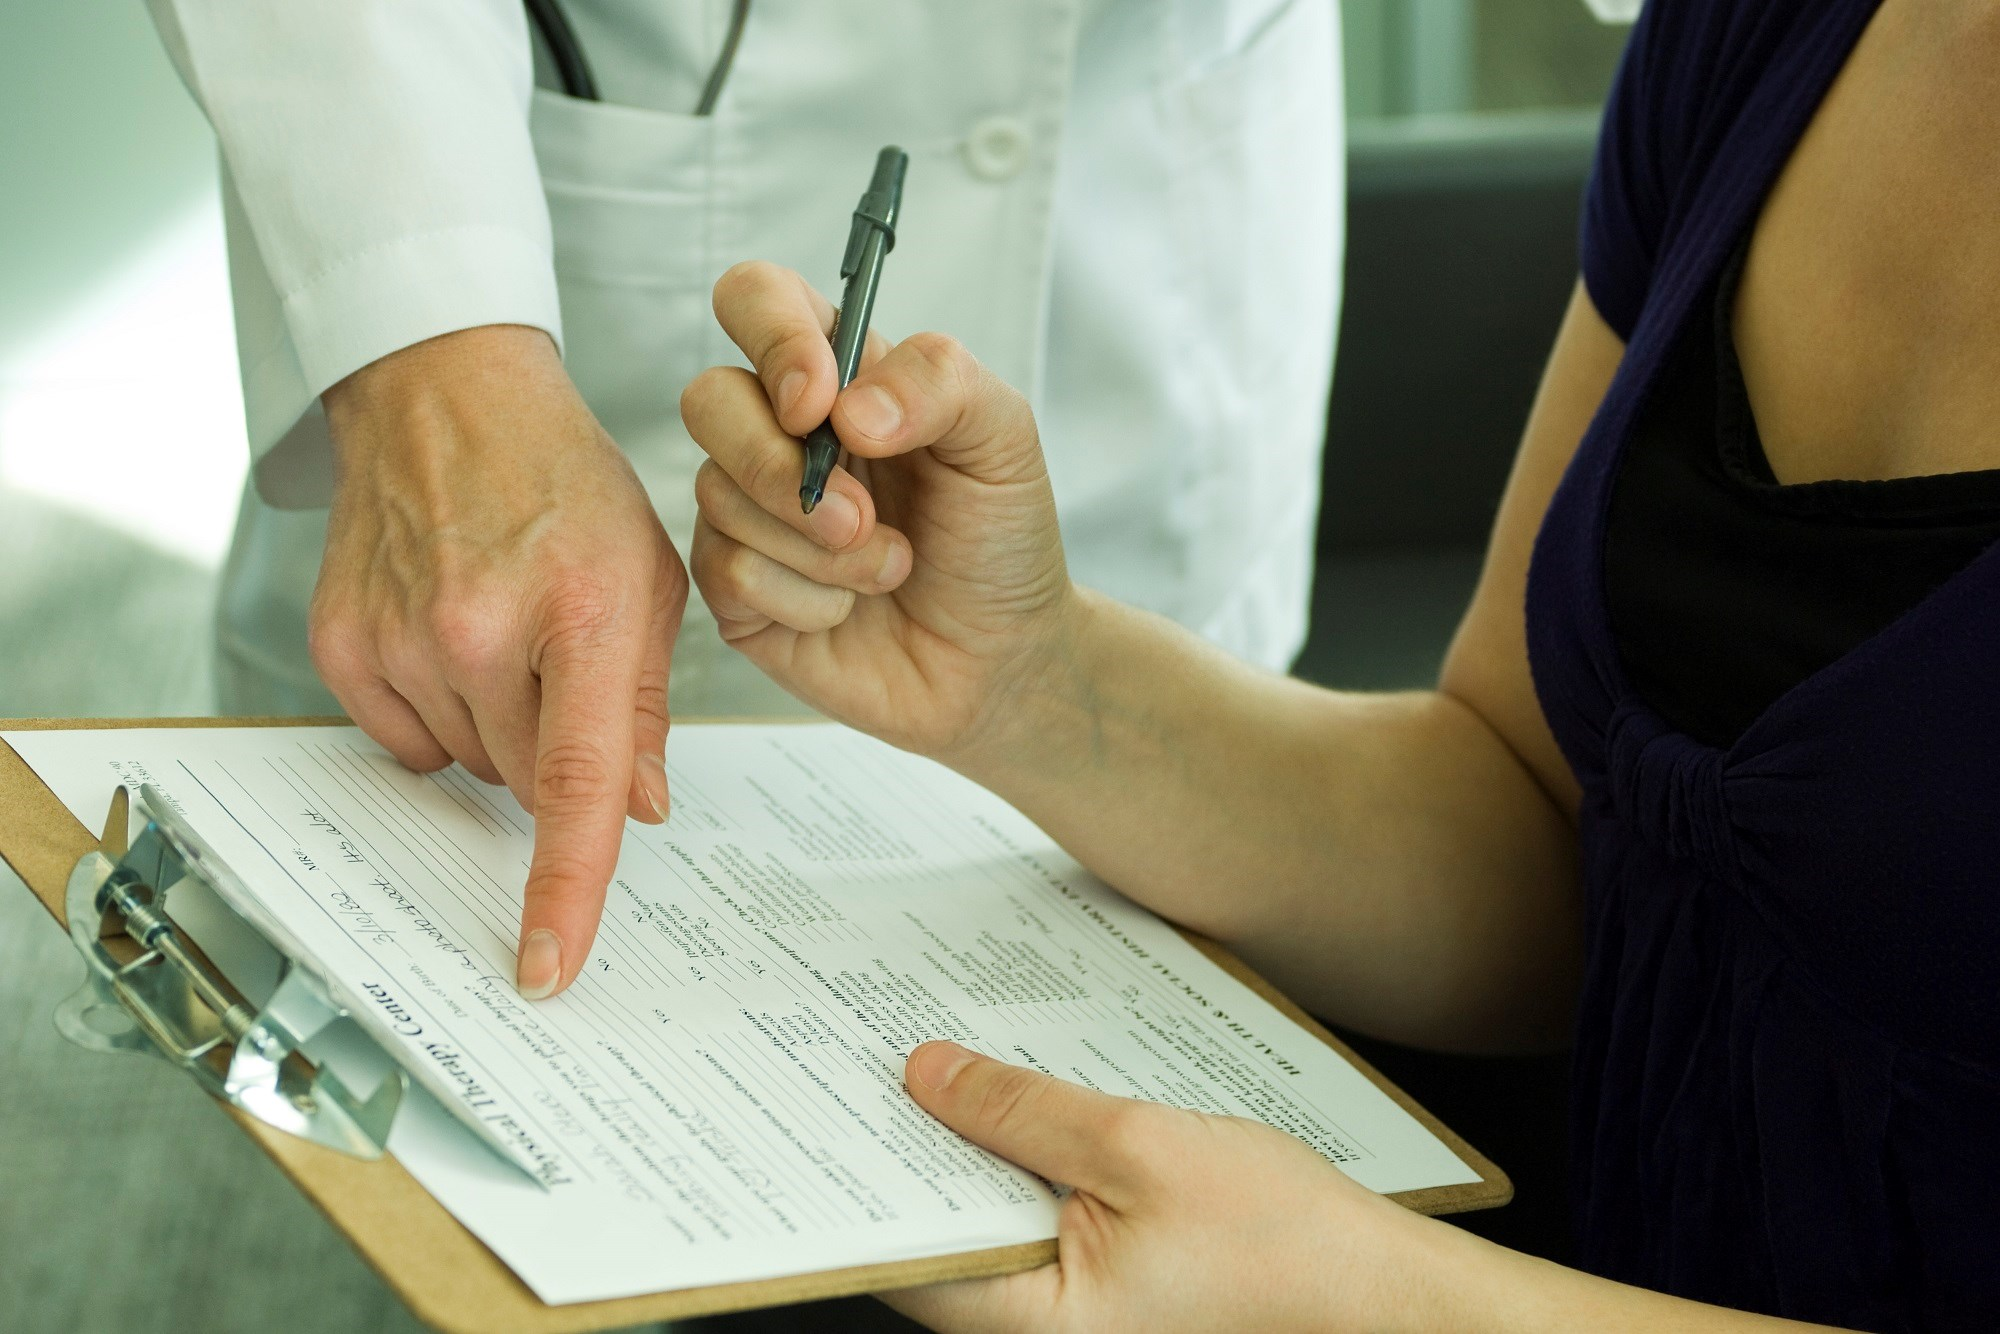 Patients unable to give informed consent displayed insufficient understanding of the study risks and benefits and the difference between research and individualized care.